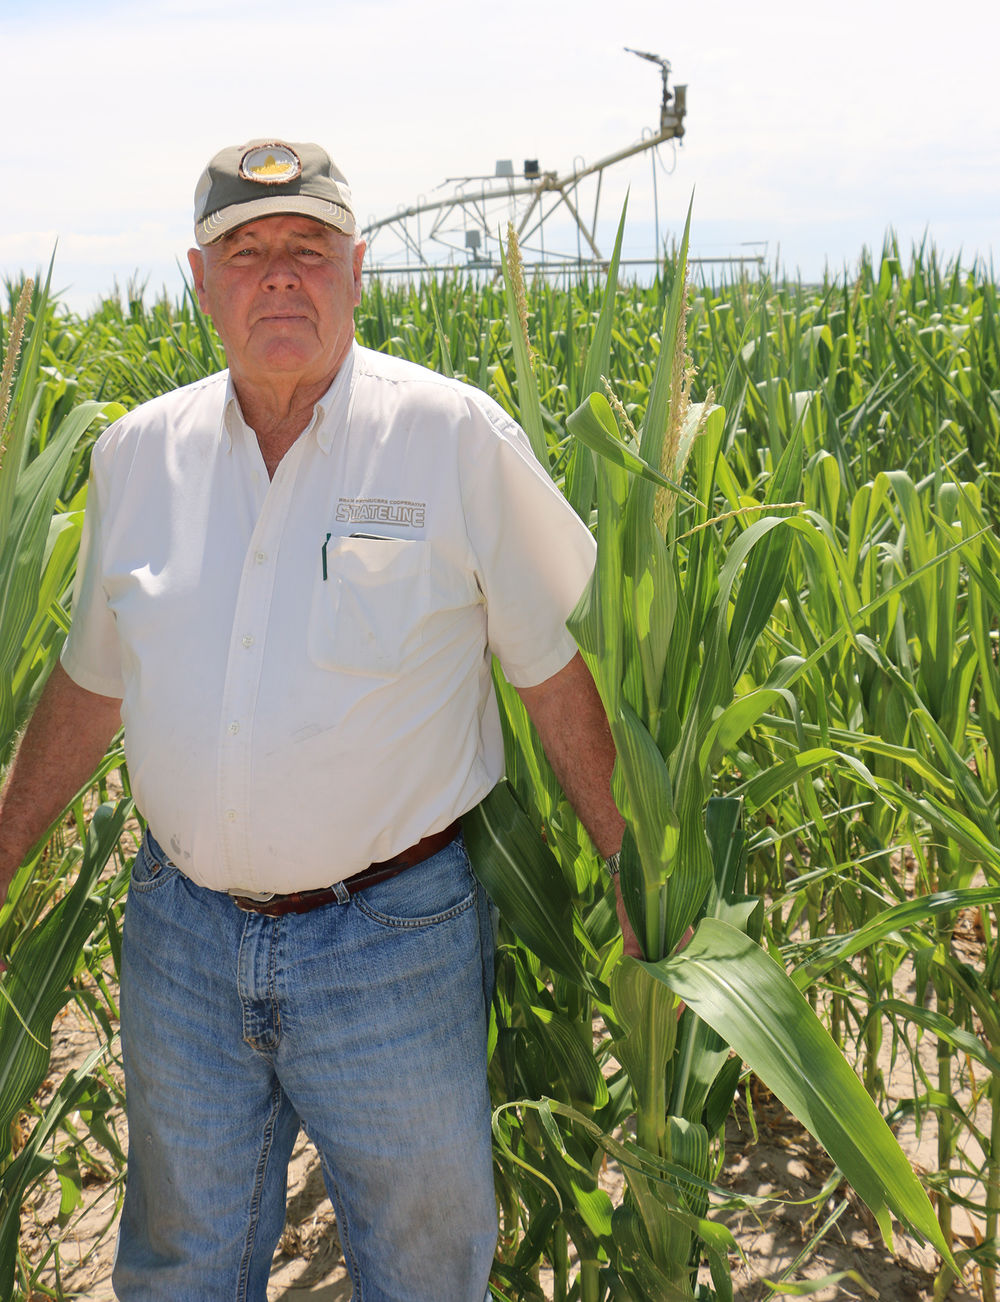 Local farmers 'at the mercy of the water;' expecting serious impacts after canal breach